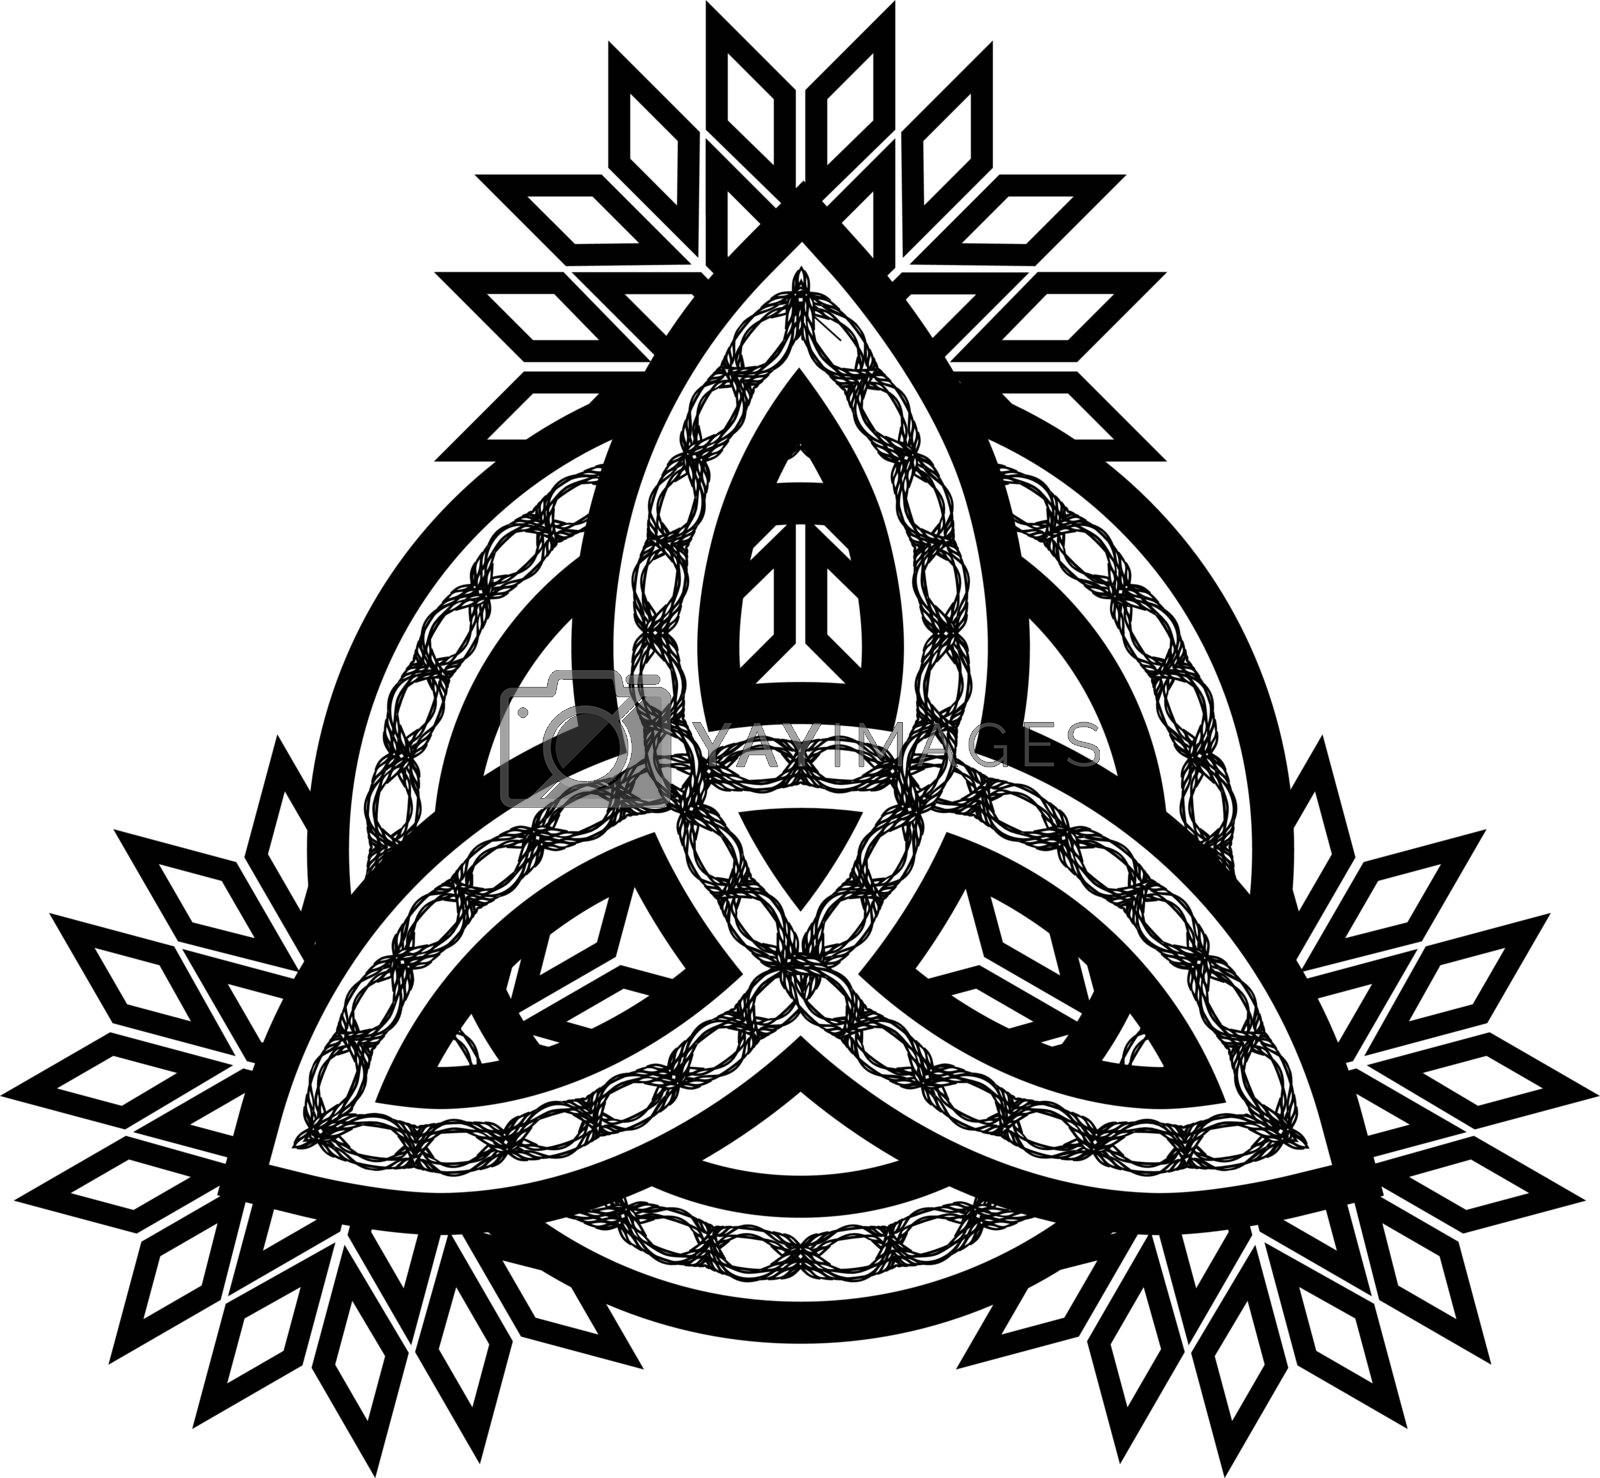 Black and white celtic pagan symbol triquetra with tribal ornament and abstract flowers